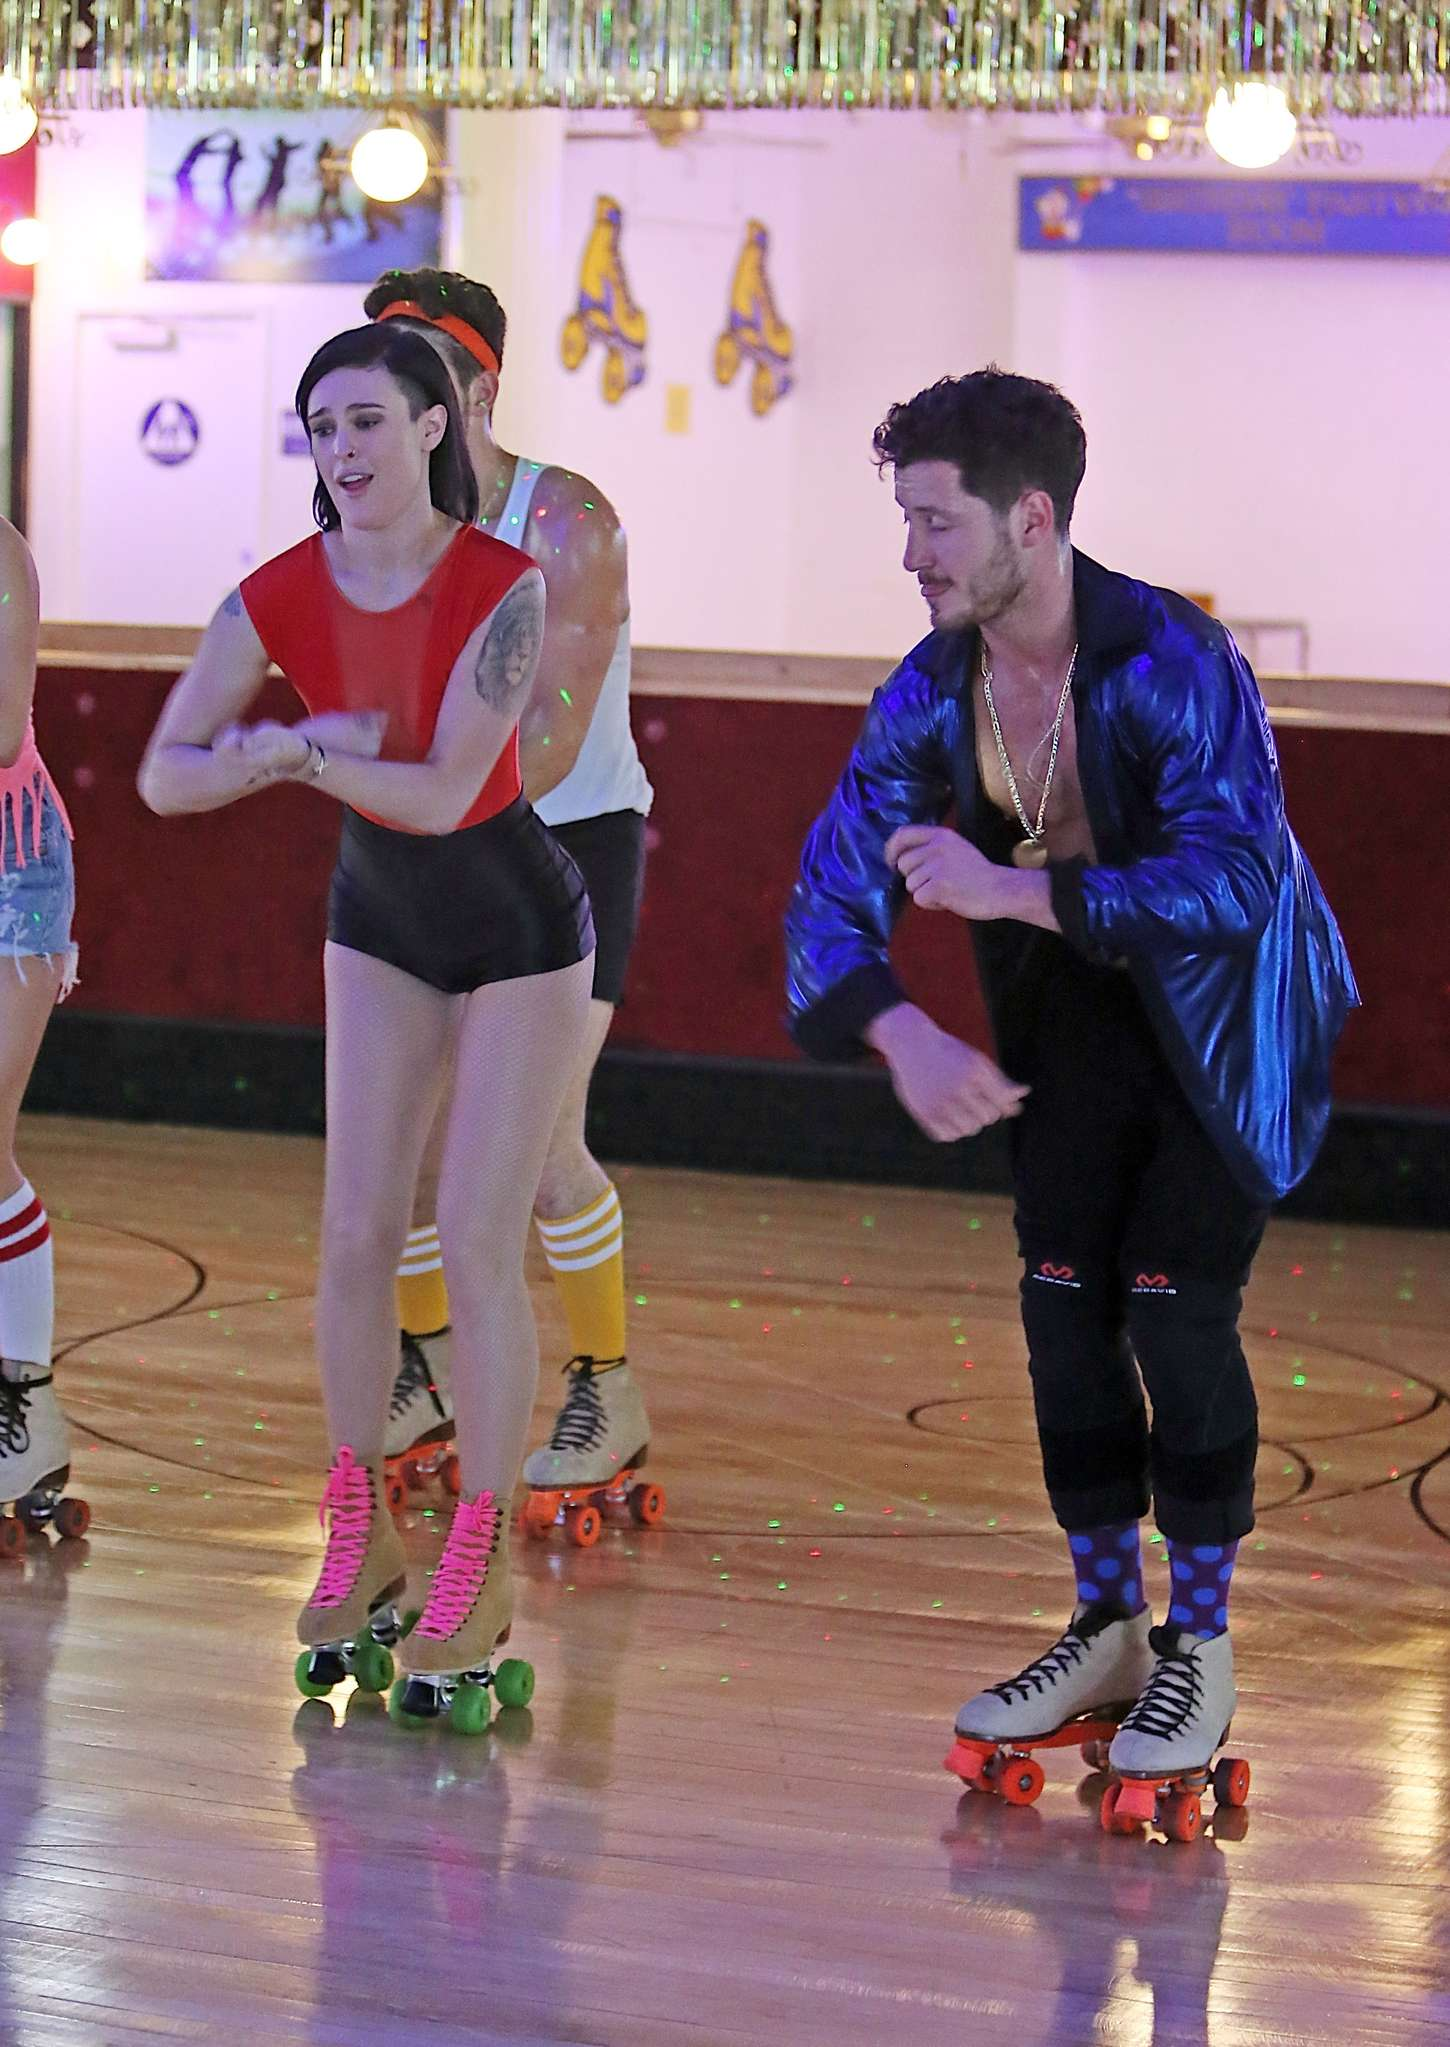 Roller skating rink la